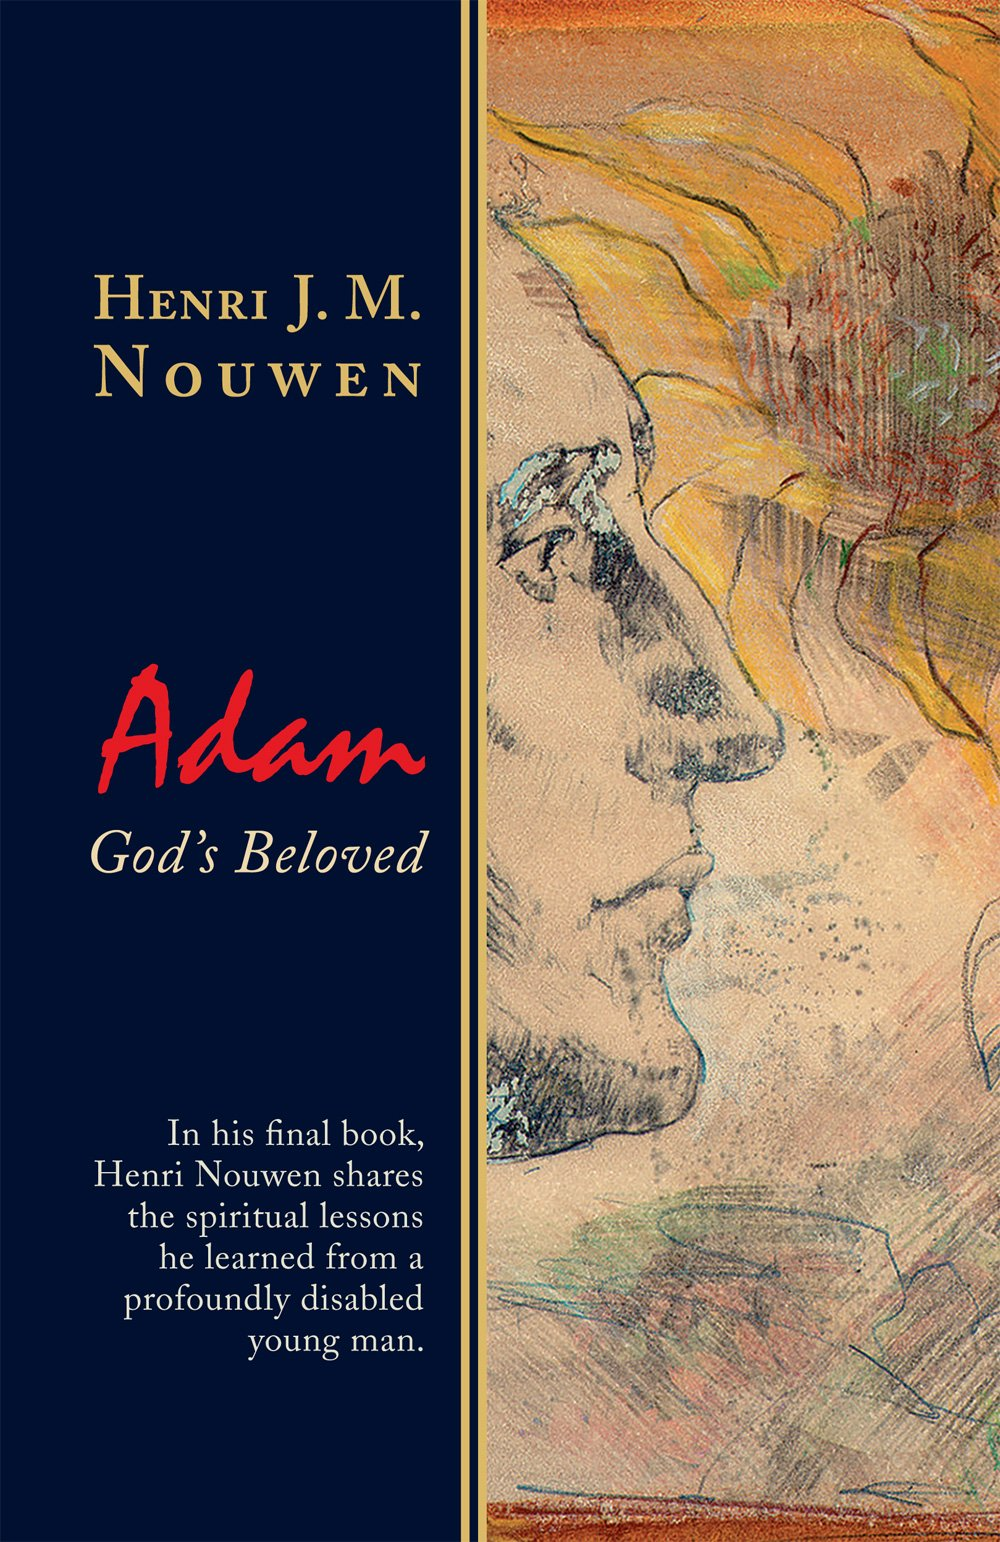 Our Reading List - Jean Vanier,Community and GrowthHenri Nouwen,Adam: God's BelovedHenri Nouwen,The Road to DaybreakStanley Hauerwas and Jean Vanier,Living Gently in a Violent World: The Prophetic Witness of WeaknessKevin Reimer,Living L'Arche: Stories of Compassion, Love, and Disability